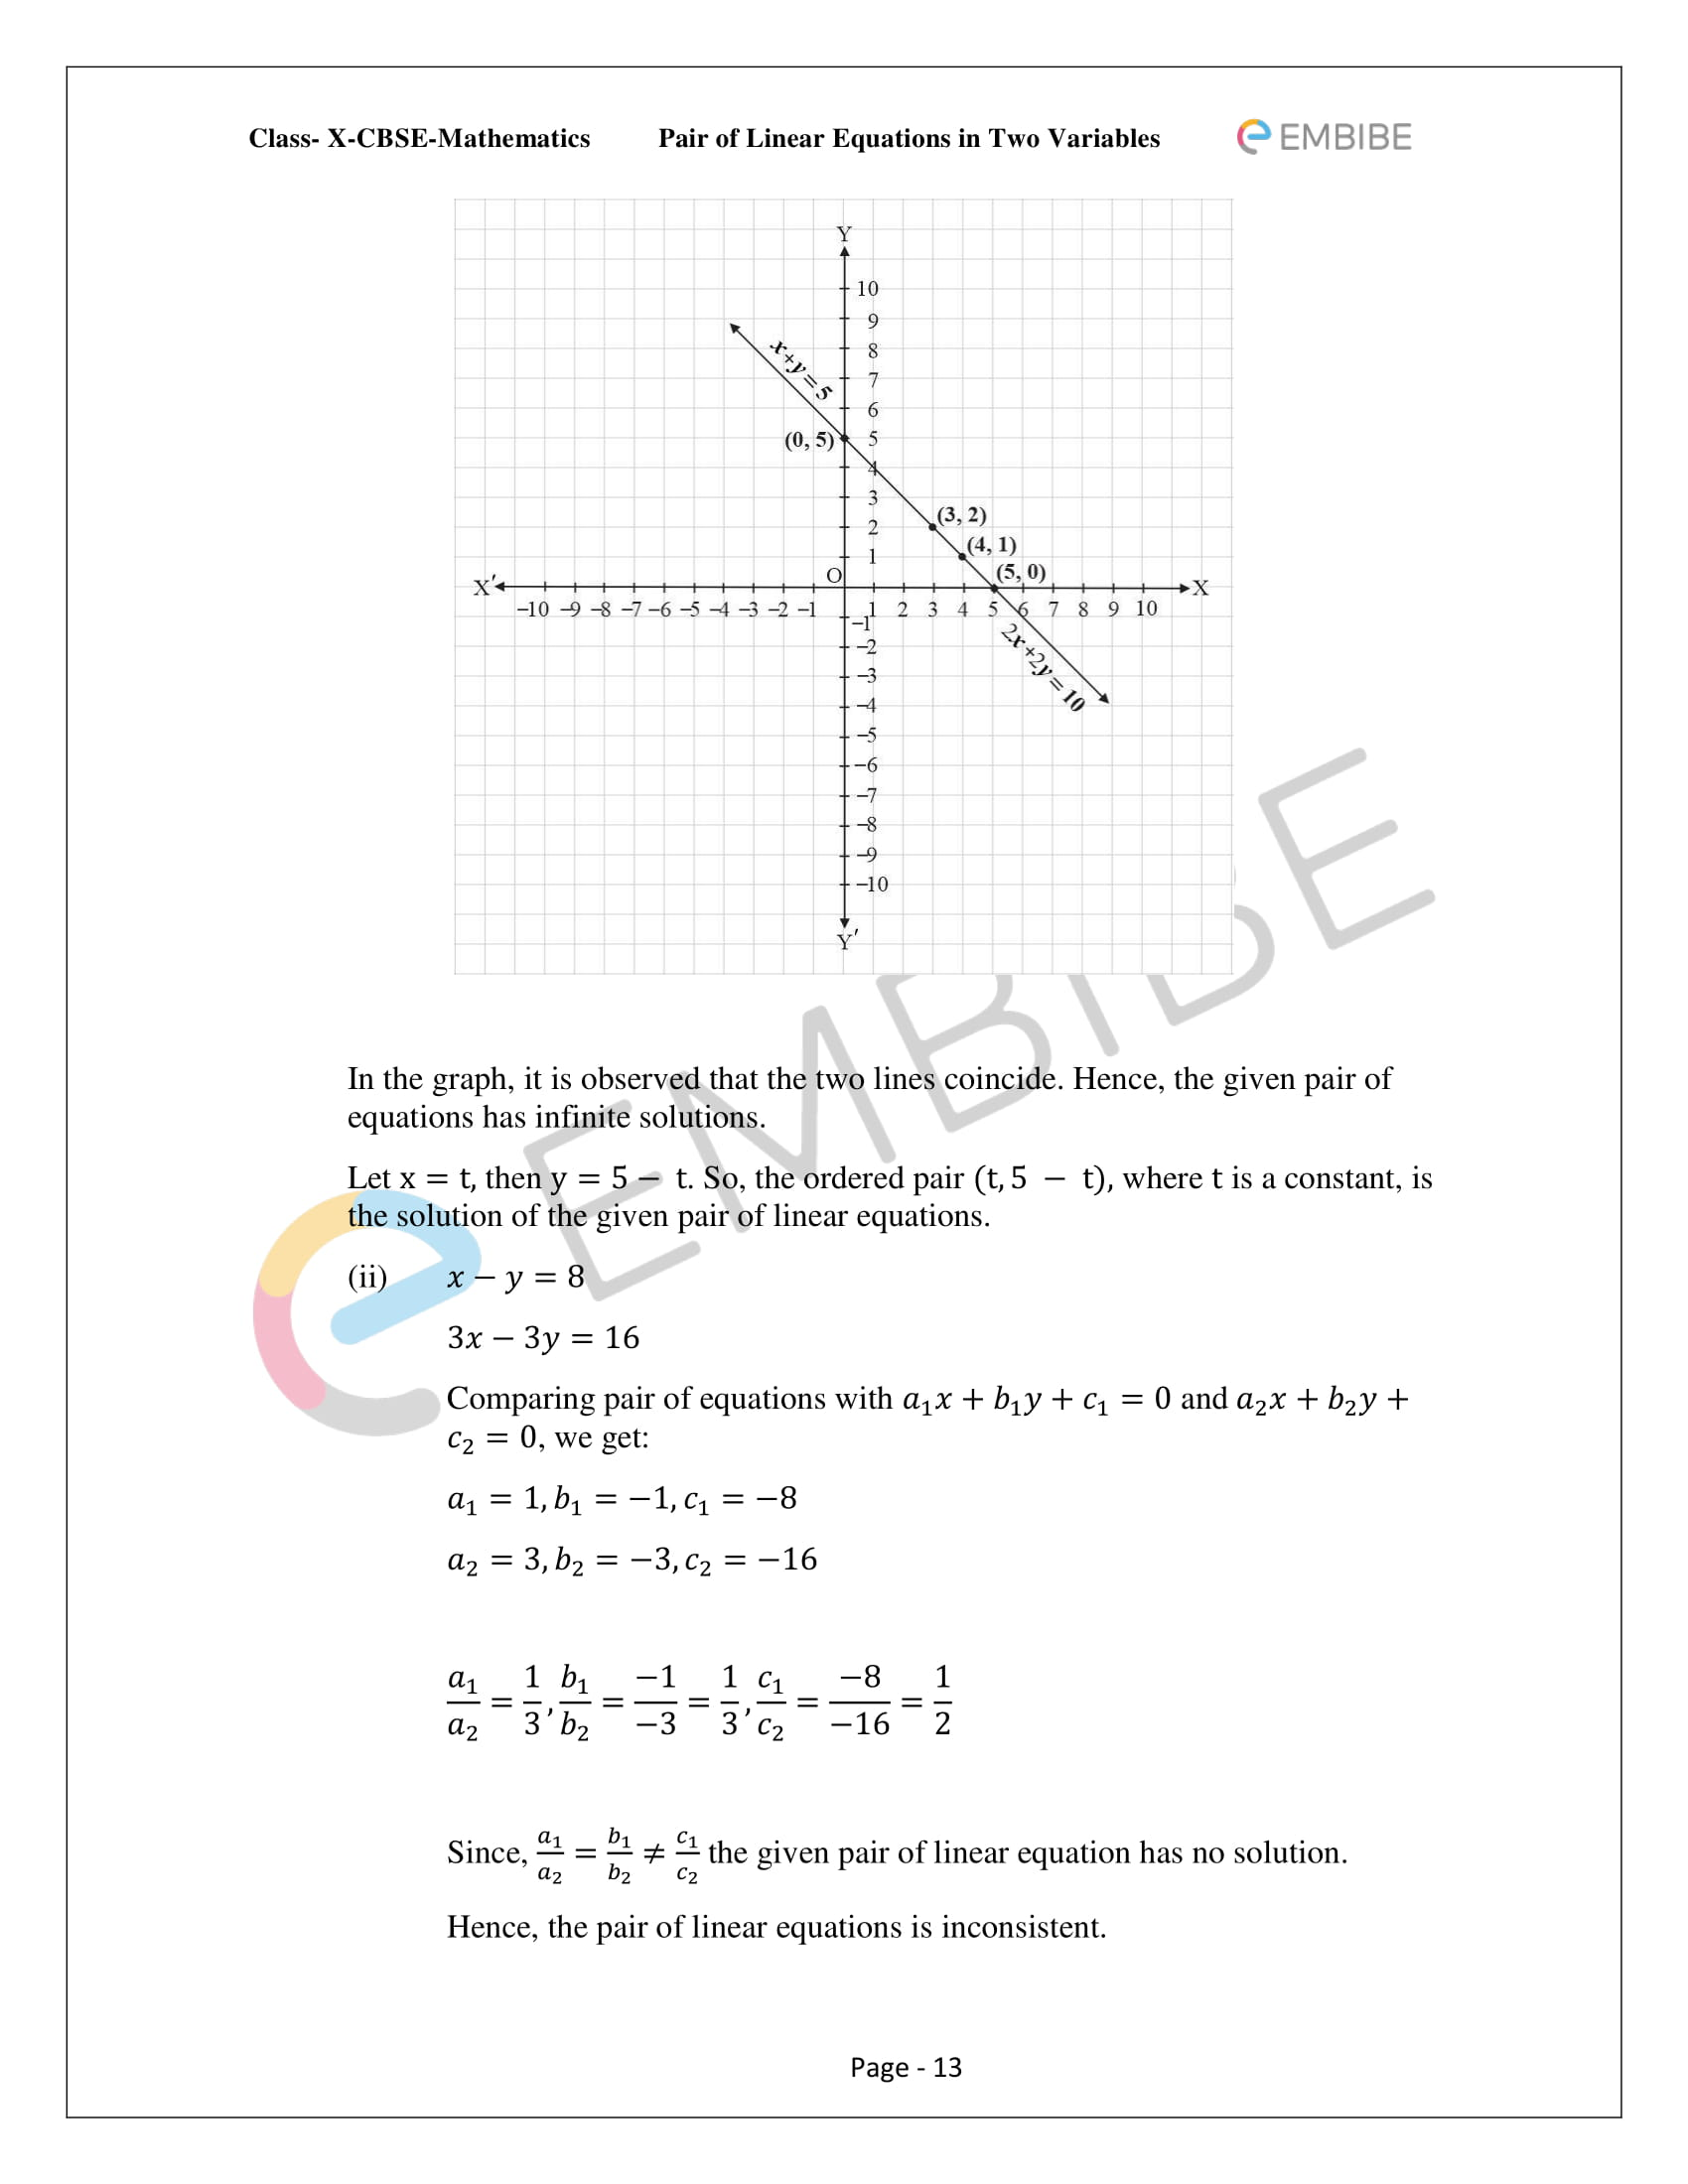 CBSE NCERT Solutions For Class 10 Maths Chapter 3 - Pair of Linear Equations In Two Variables - 13